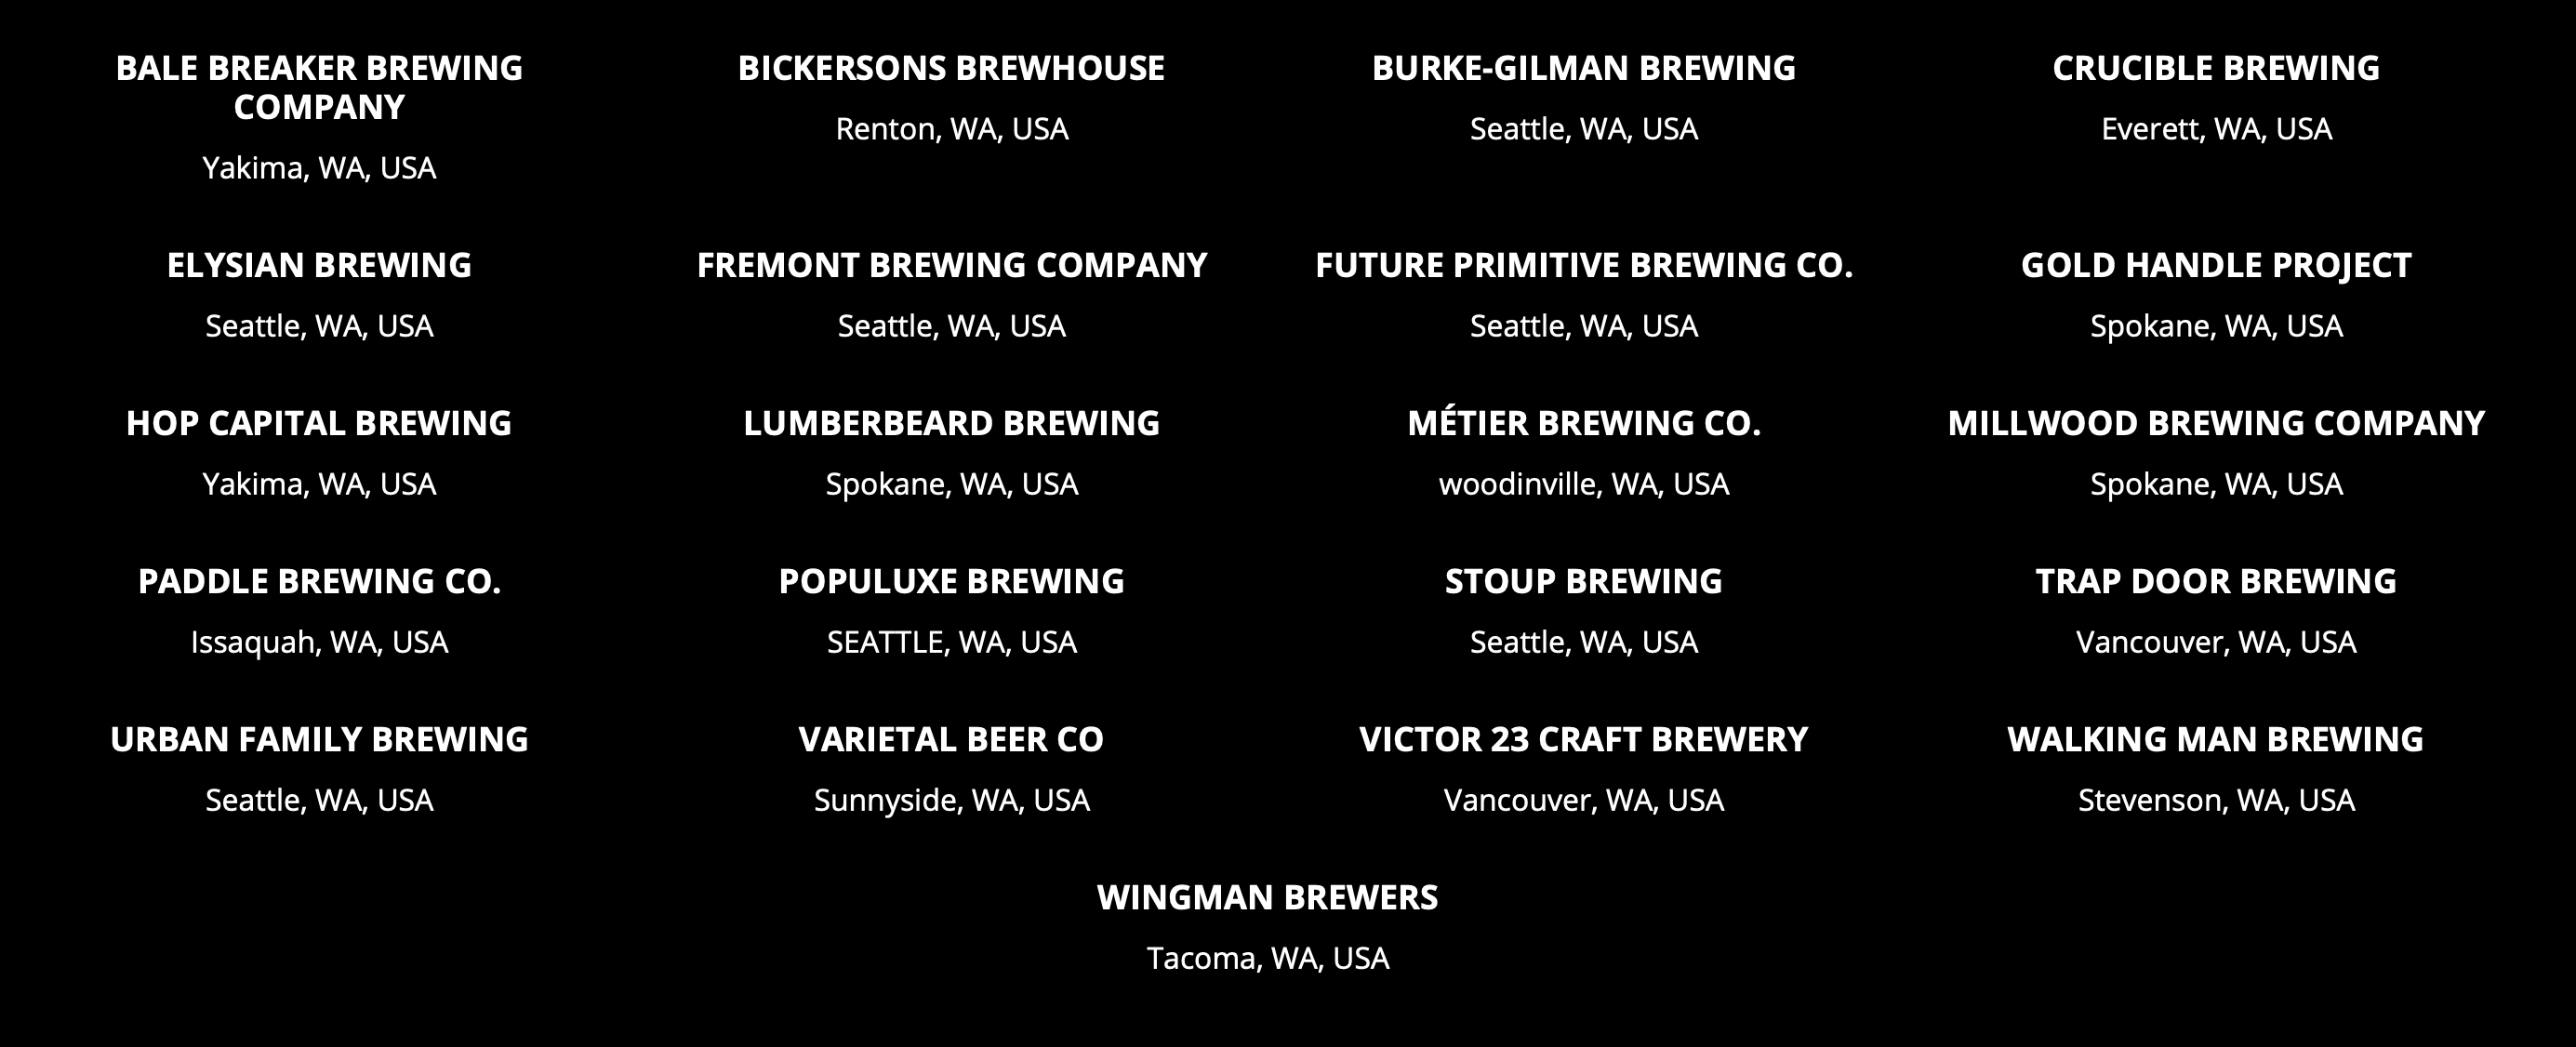 Participating Washington breweries in the Black is Beautiful beer.